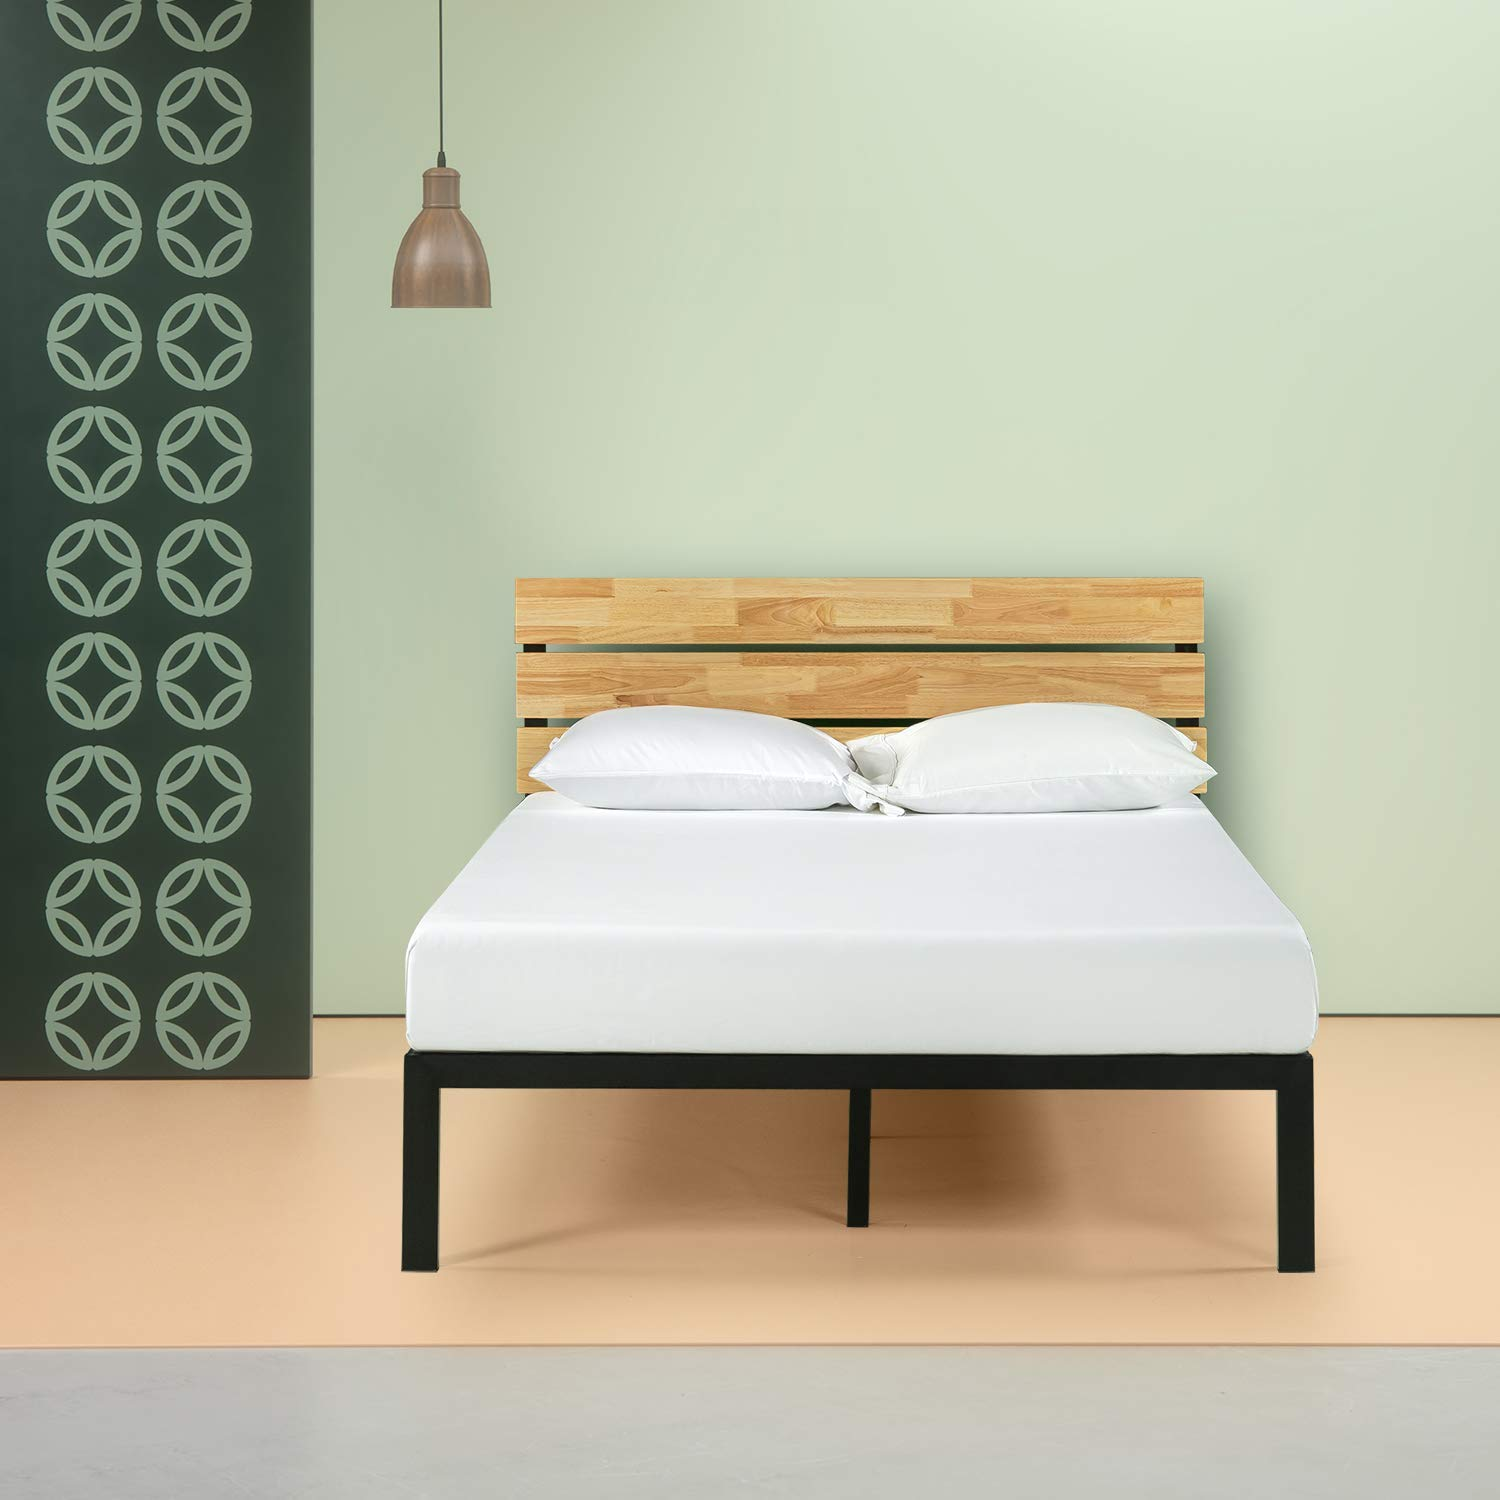 Zinus Paul Best Bed Frames Review by www.snoremagazine.com